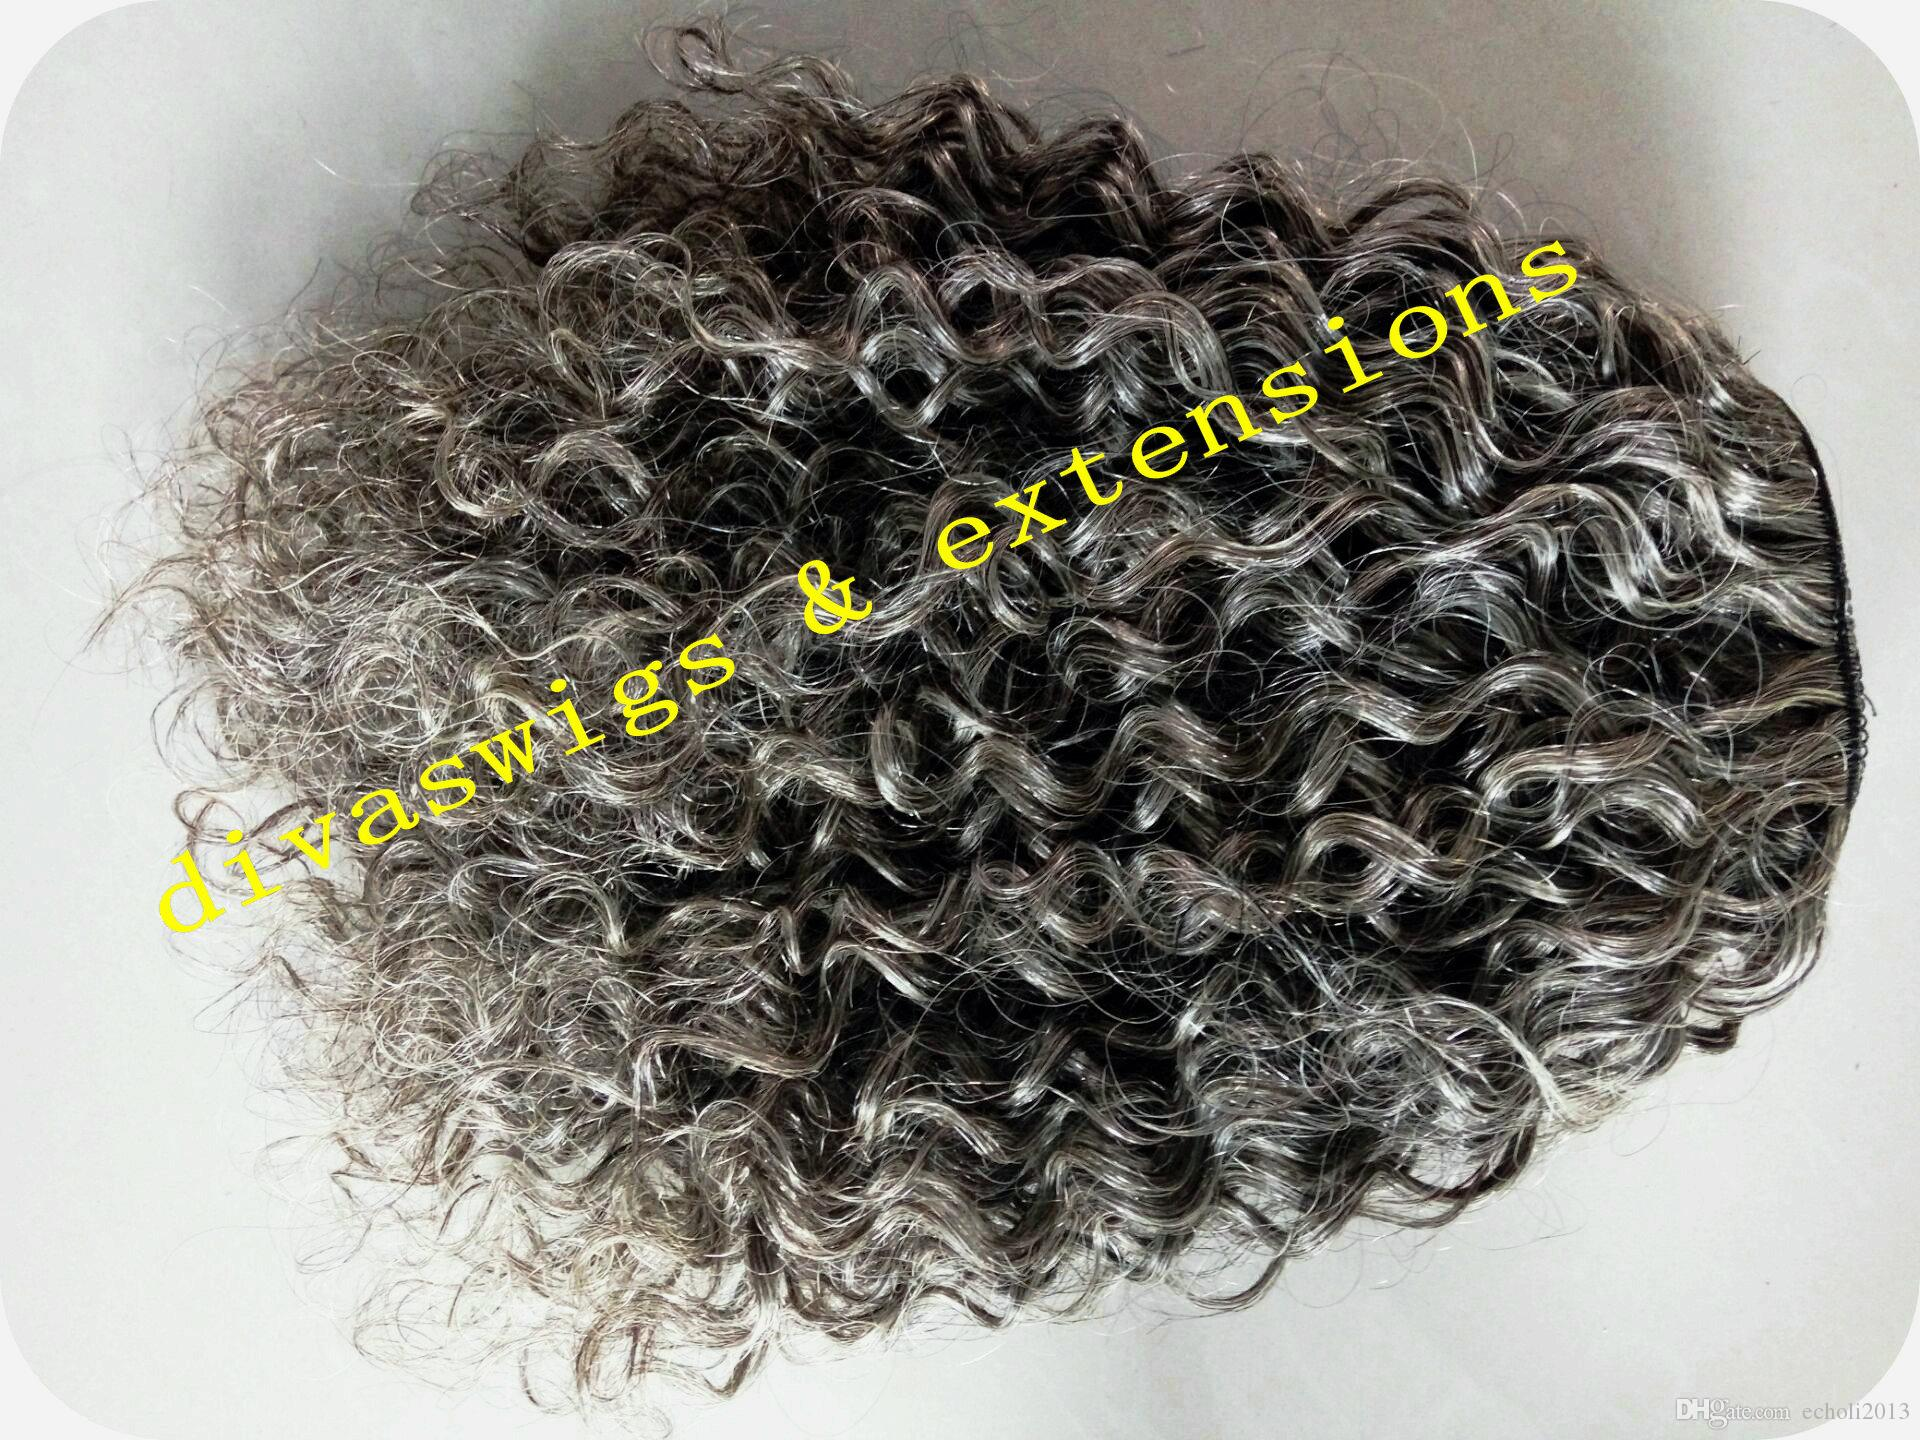 Short high kinky curly Silver grey two tone ombre hair weave ponytail hairpiece clip virgin gray drawstring ponytail hair extension 14inch